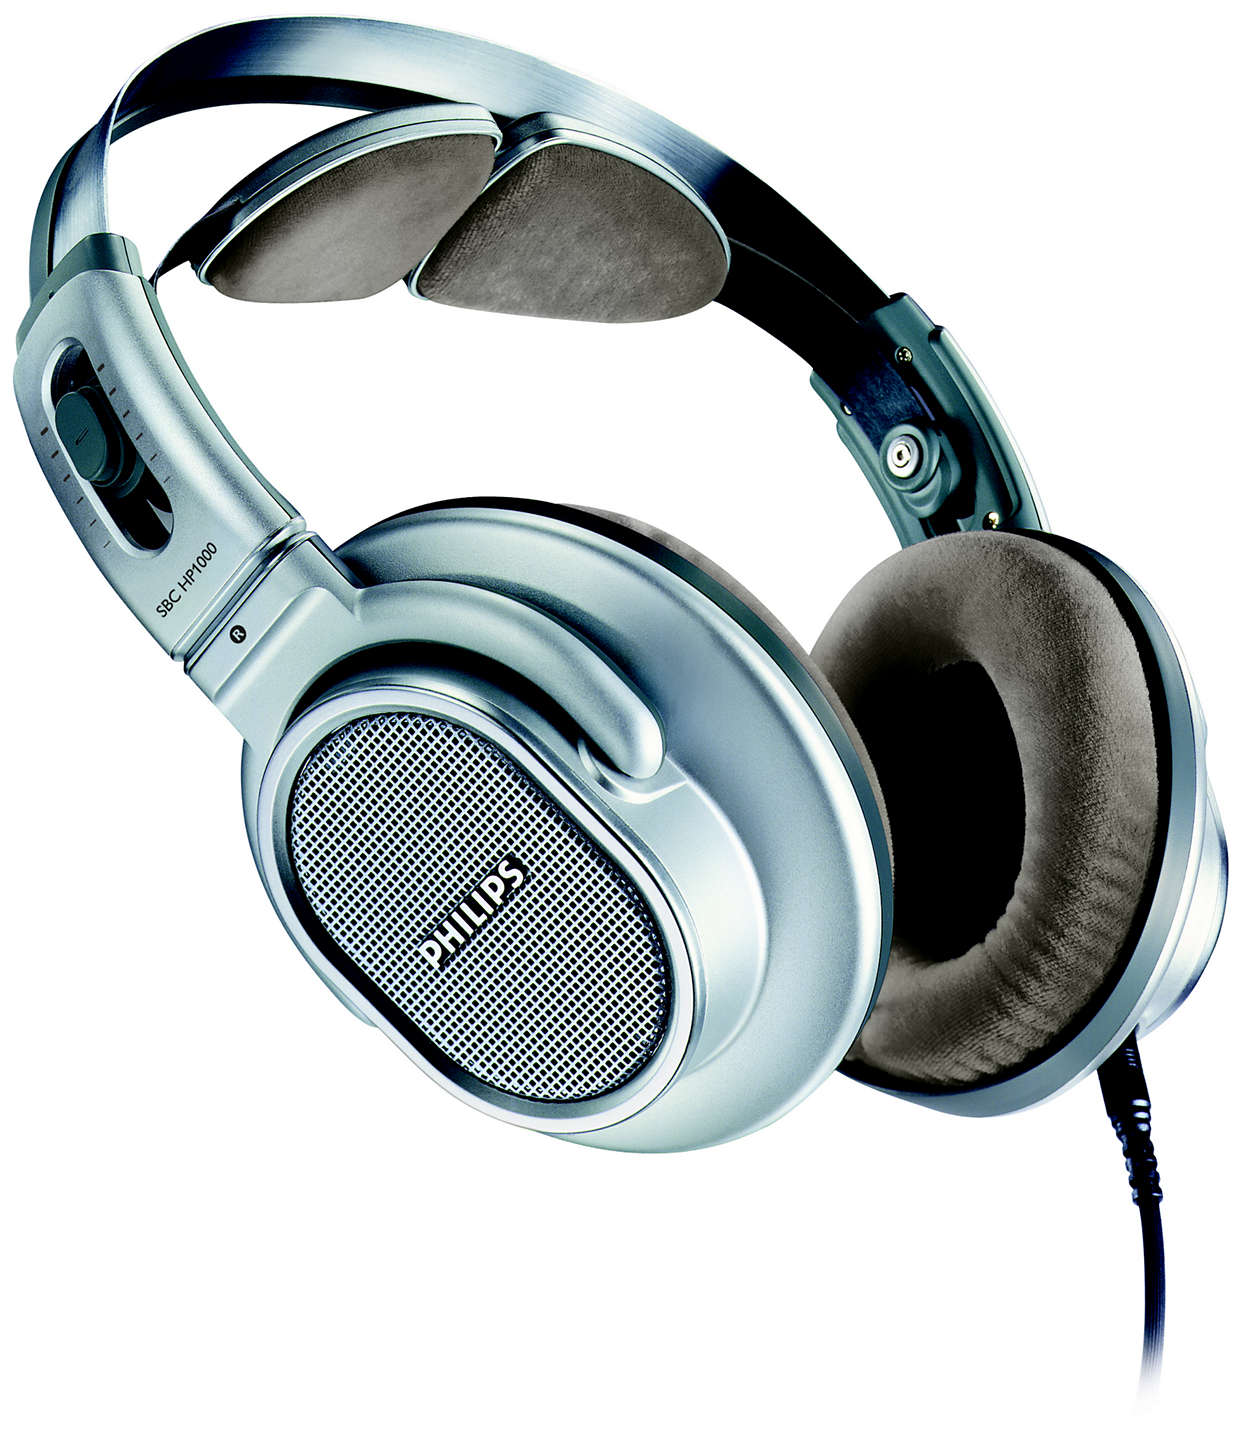 Pure HiFi Headphones